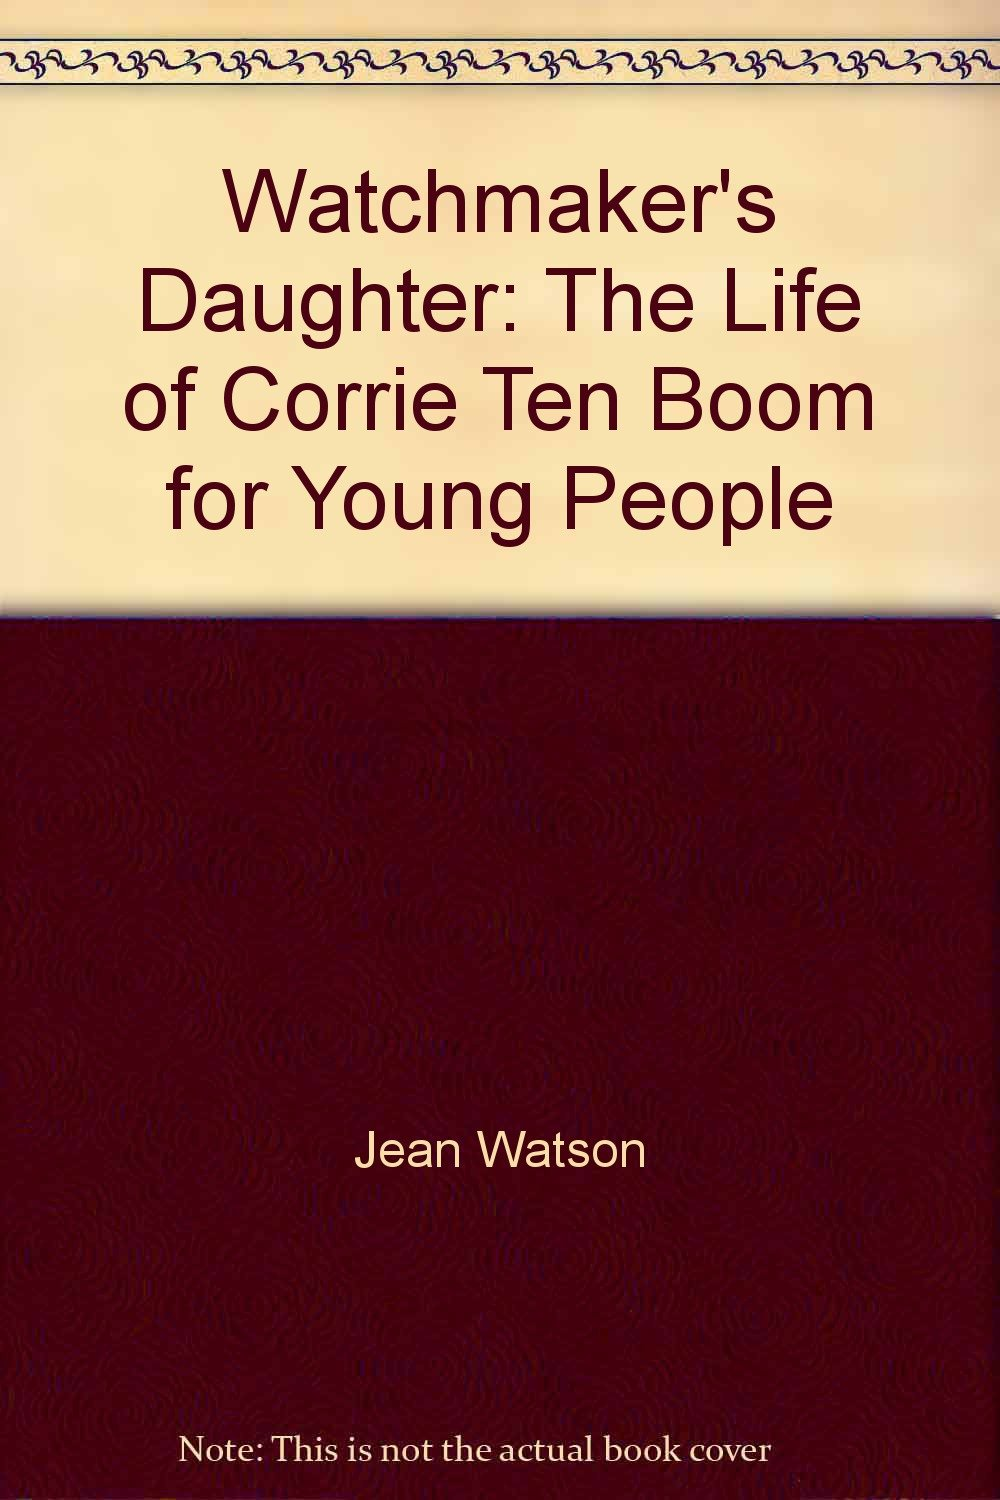 Watchmaker s daughter the life of corrie ten boom for young people jean watson 9780800751166 amazon com books